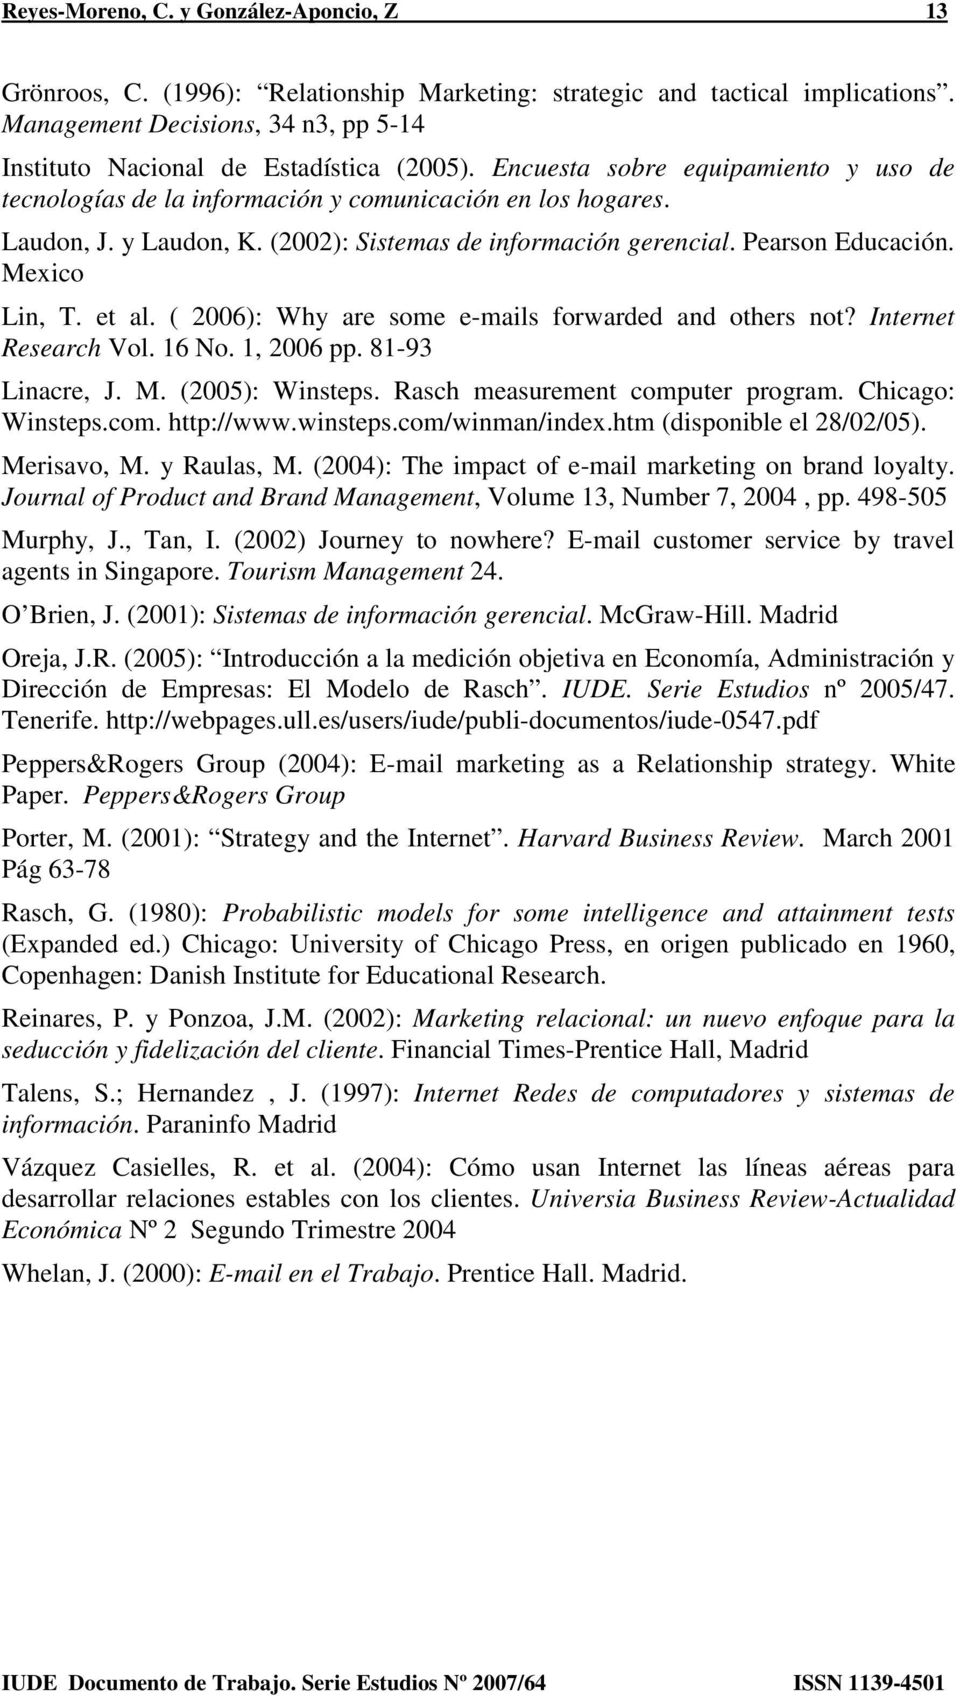 (2002): Sistemas de información gerencial. Pearson Educación. Mexico Lin, T. et al. ( 2006): Why are some e-mails forwarded and others not? Internet Research Vol. 16 No. 1, 2006 pp. 81-93 Linacre, J.